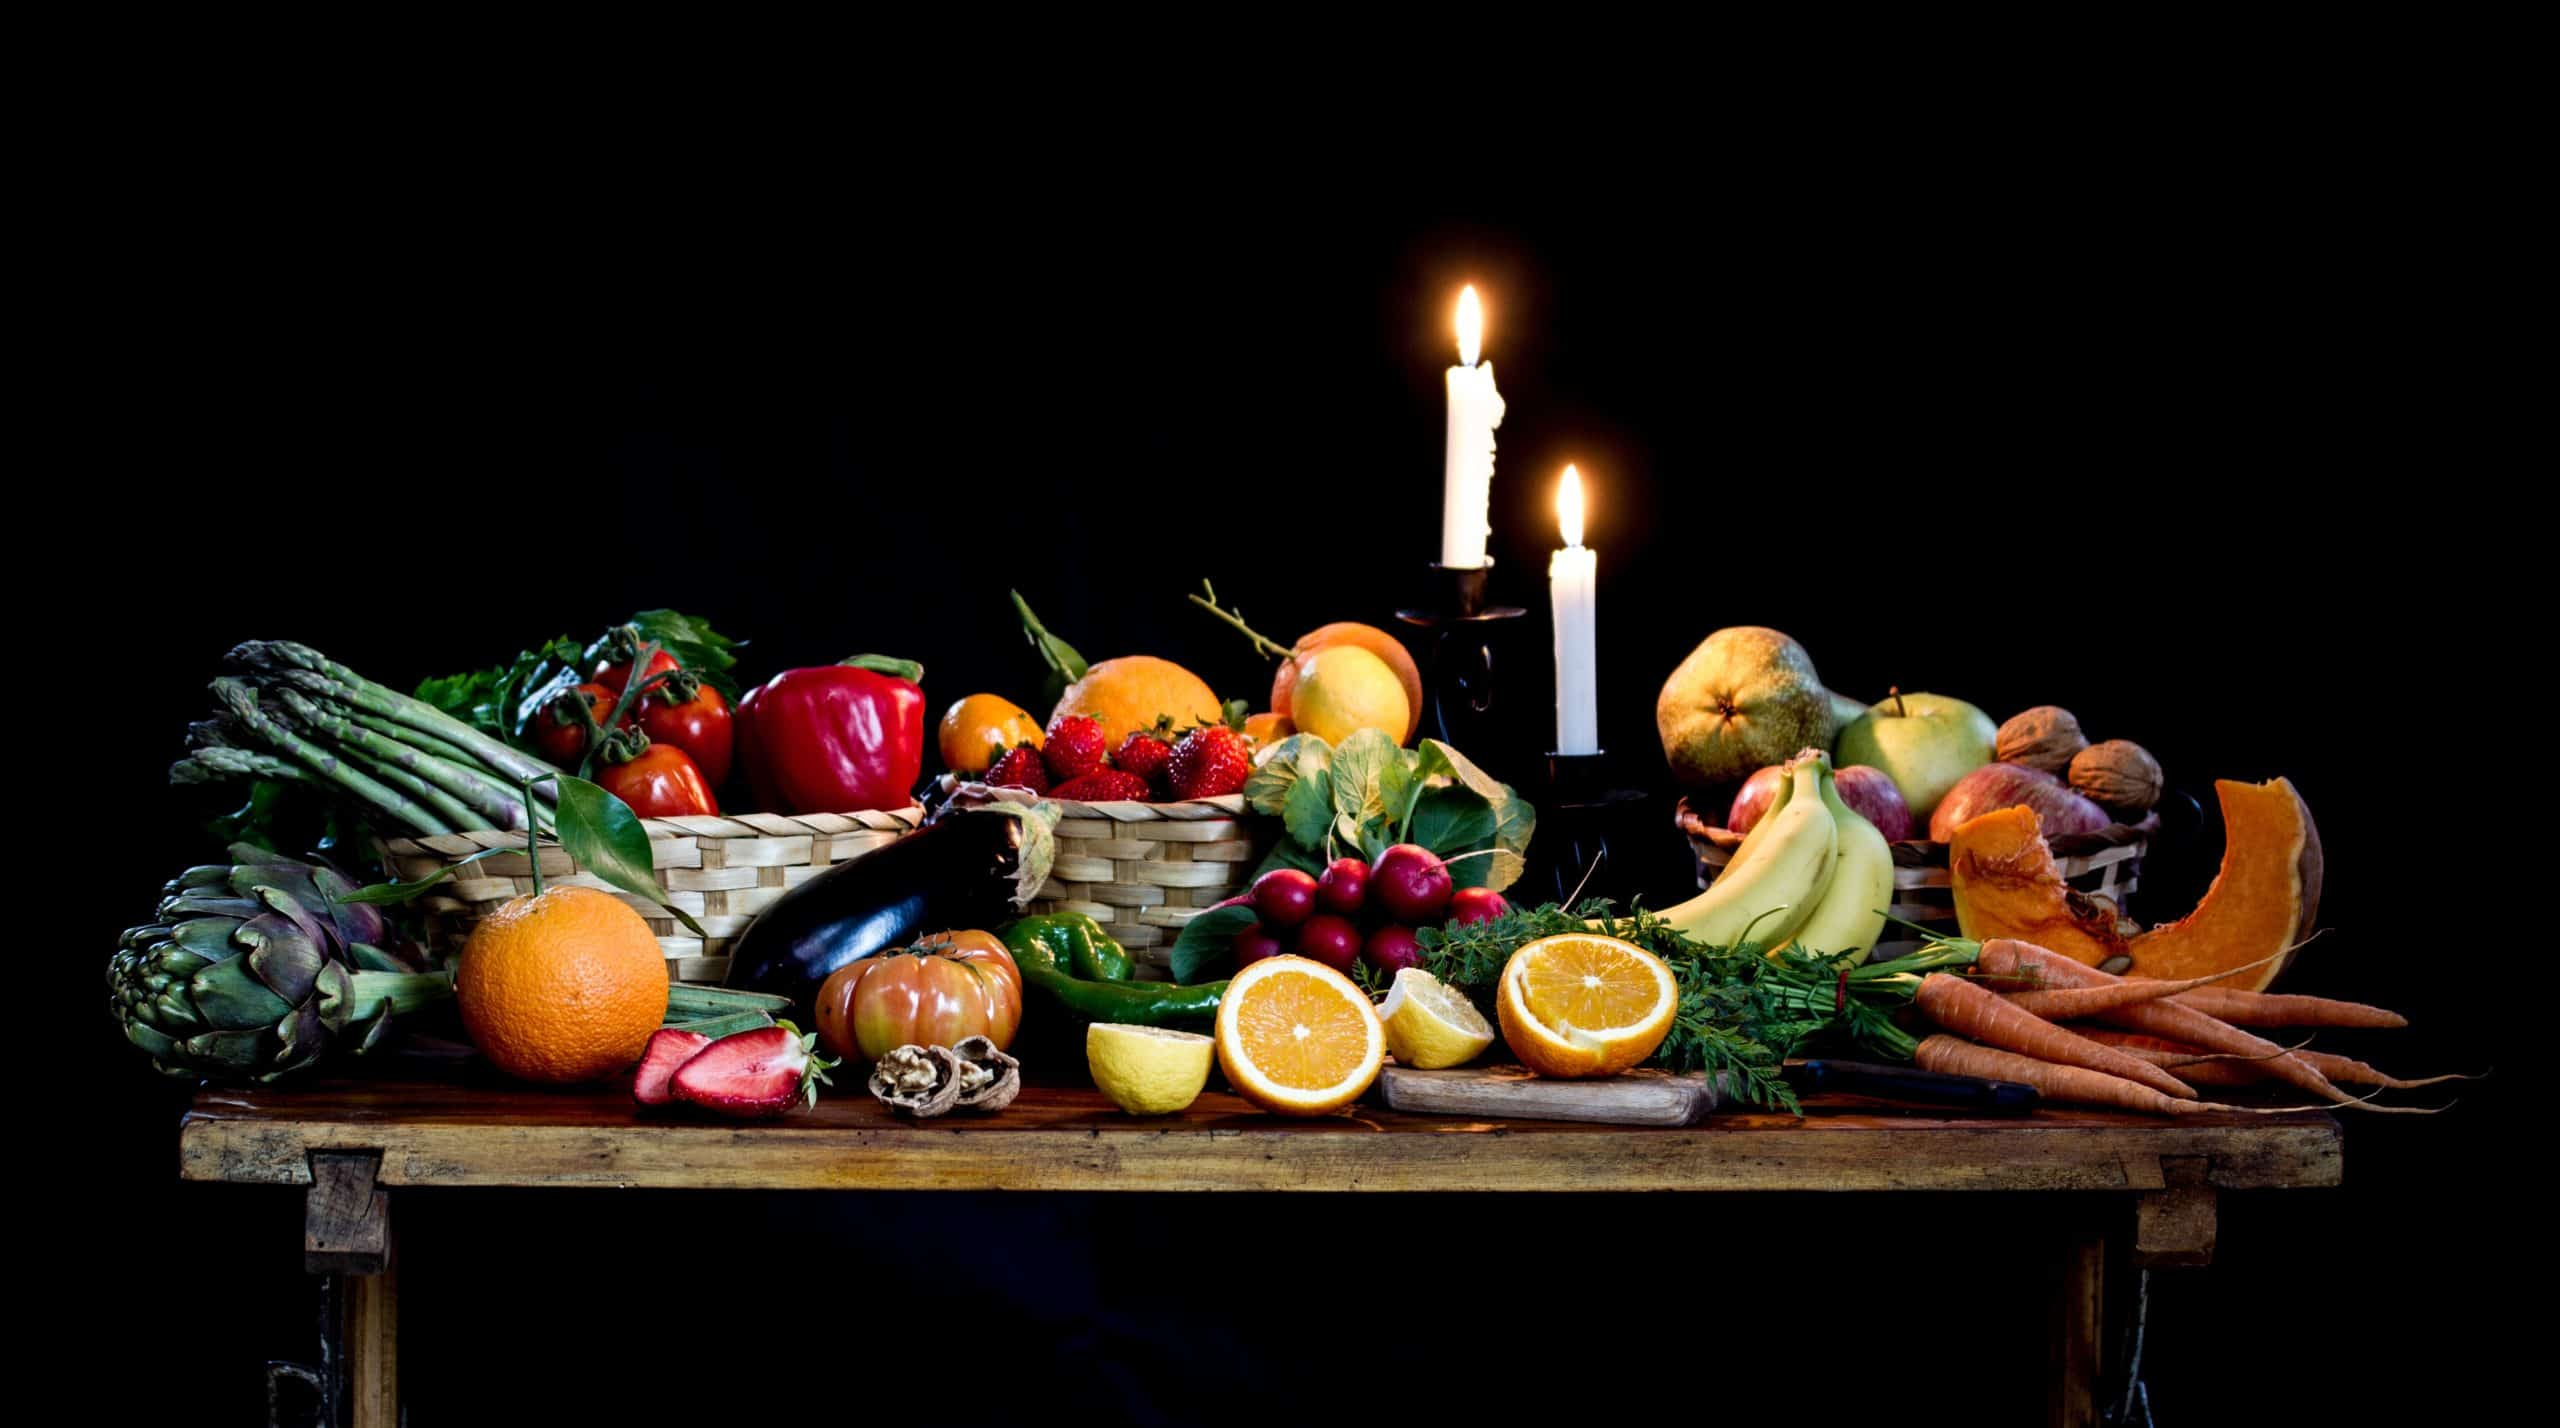 Benefits Of Eating A Variety Of Fruits And Vegetables